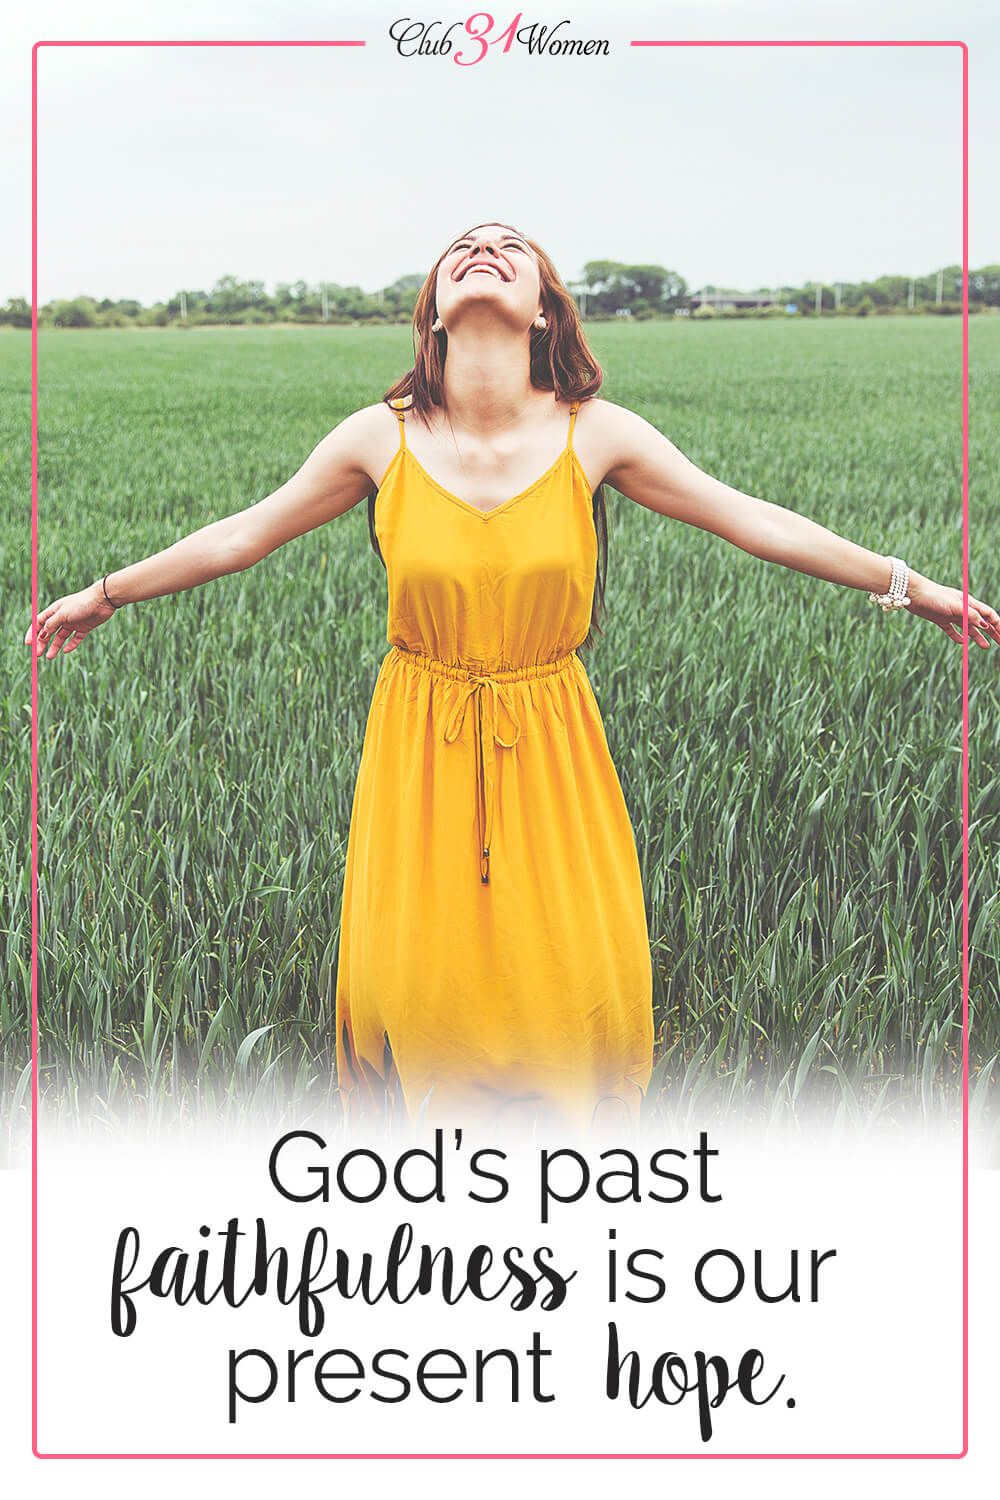 God's faithfulness is the reason we can hope. As we walk in His word, His faithfulness follows us as a promise fulfilled. via @Club31Women